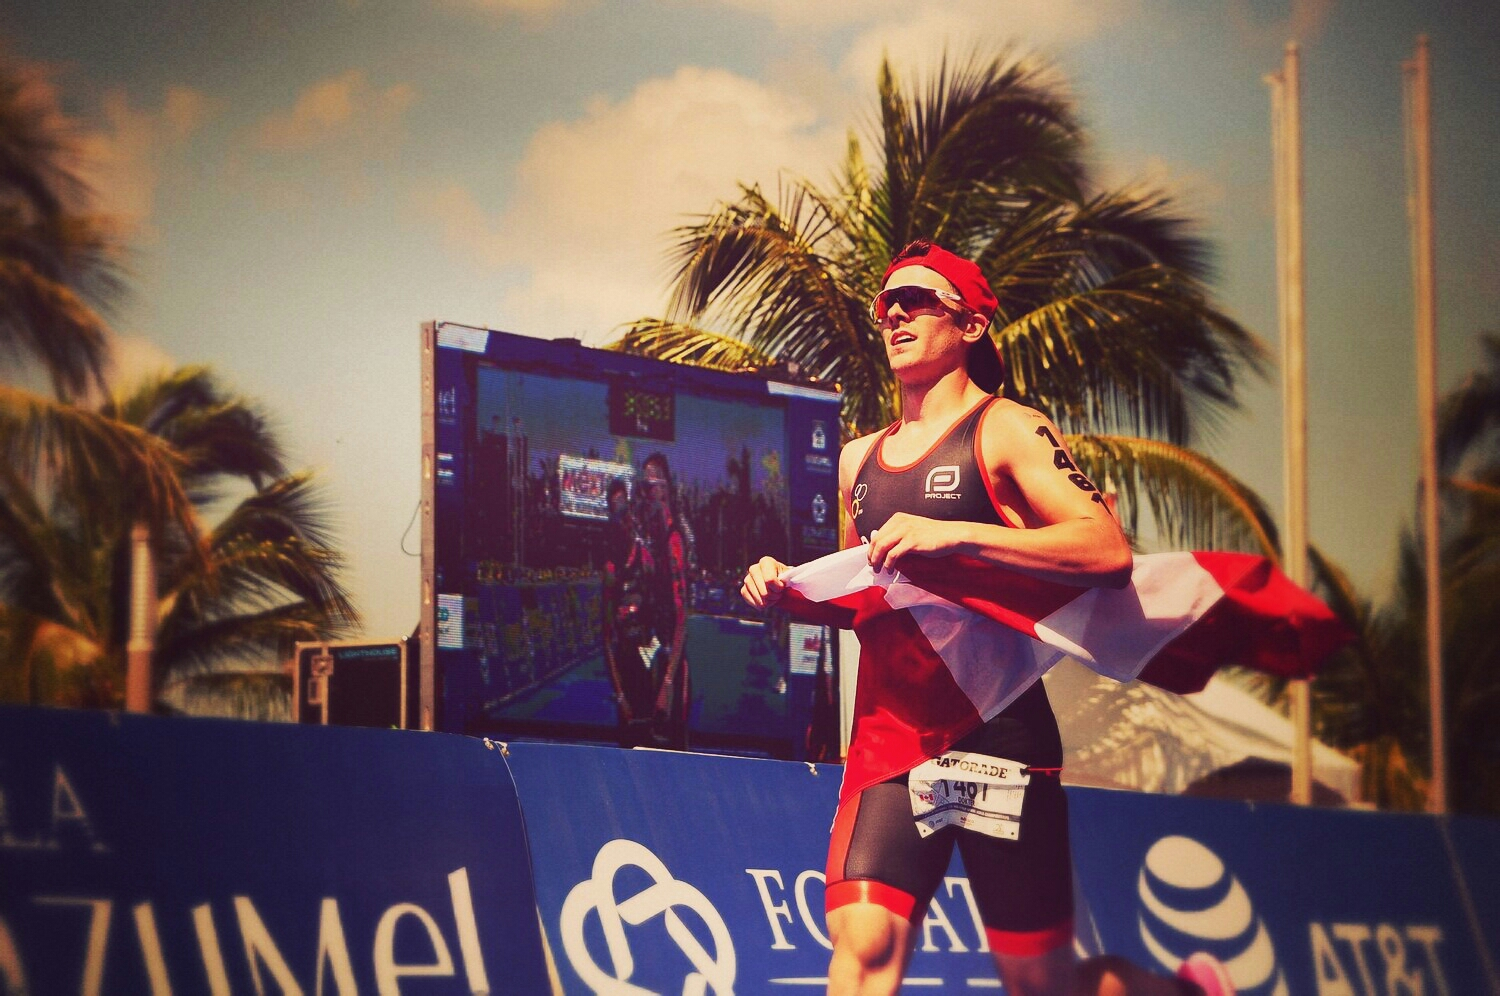 T1 High Performance athlete, Eric Dokter, at World Champs in Cozumel, Mexico.